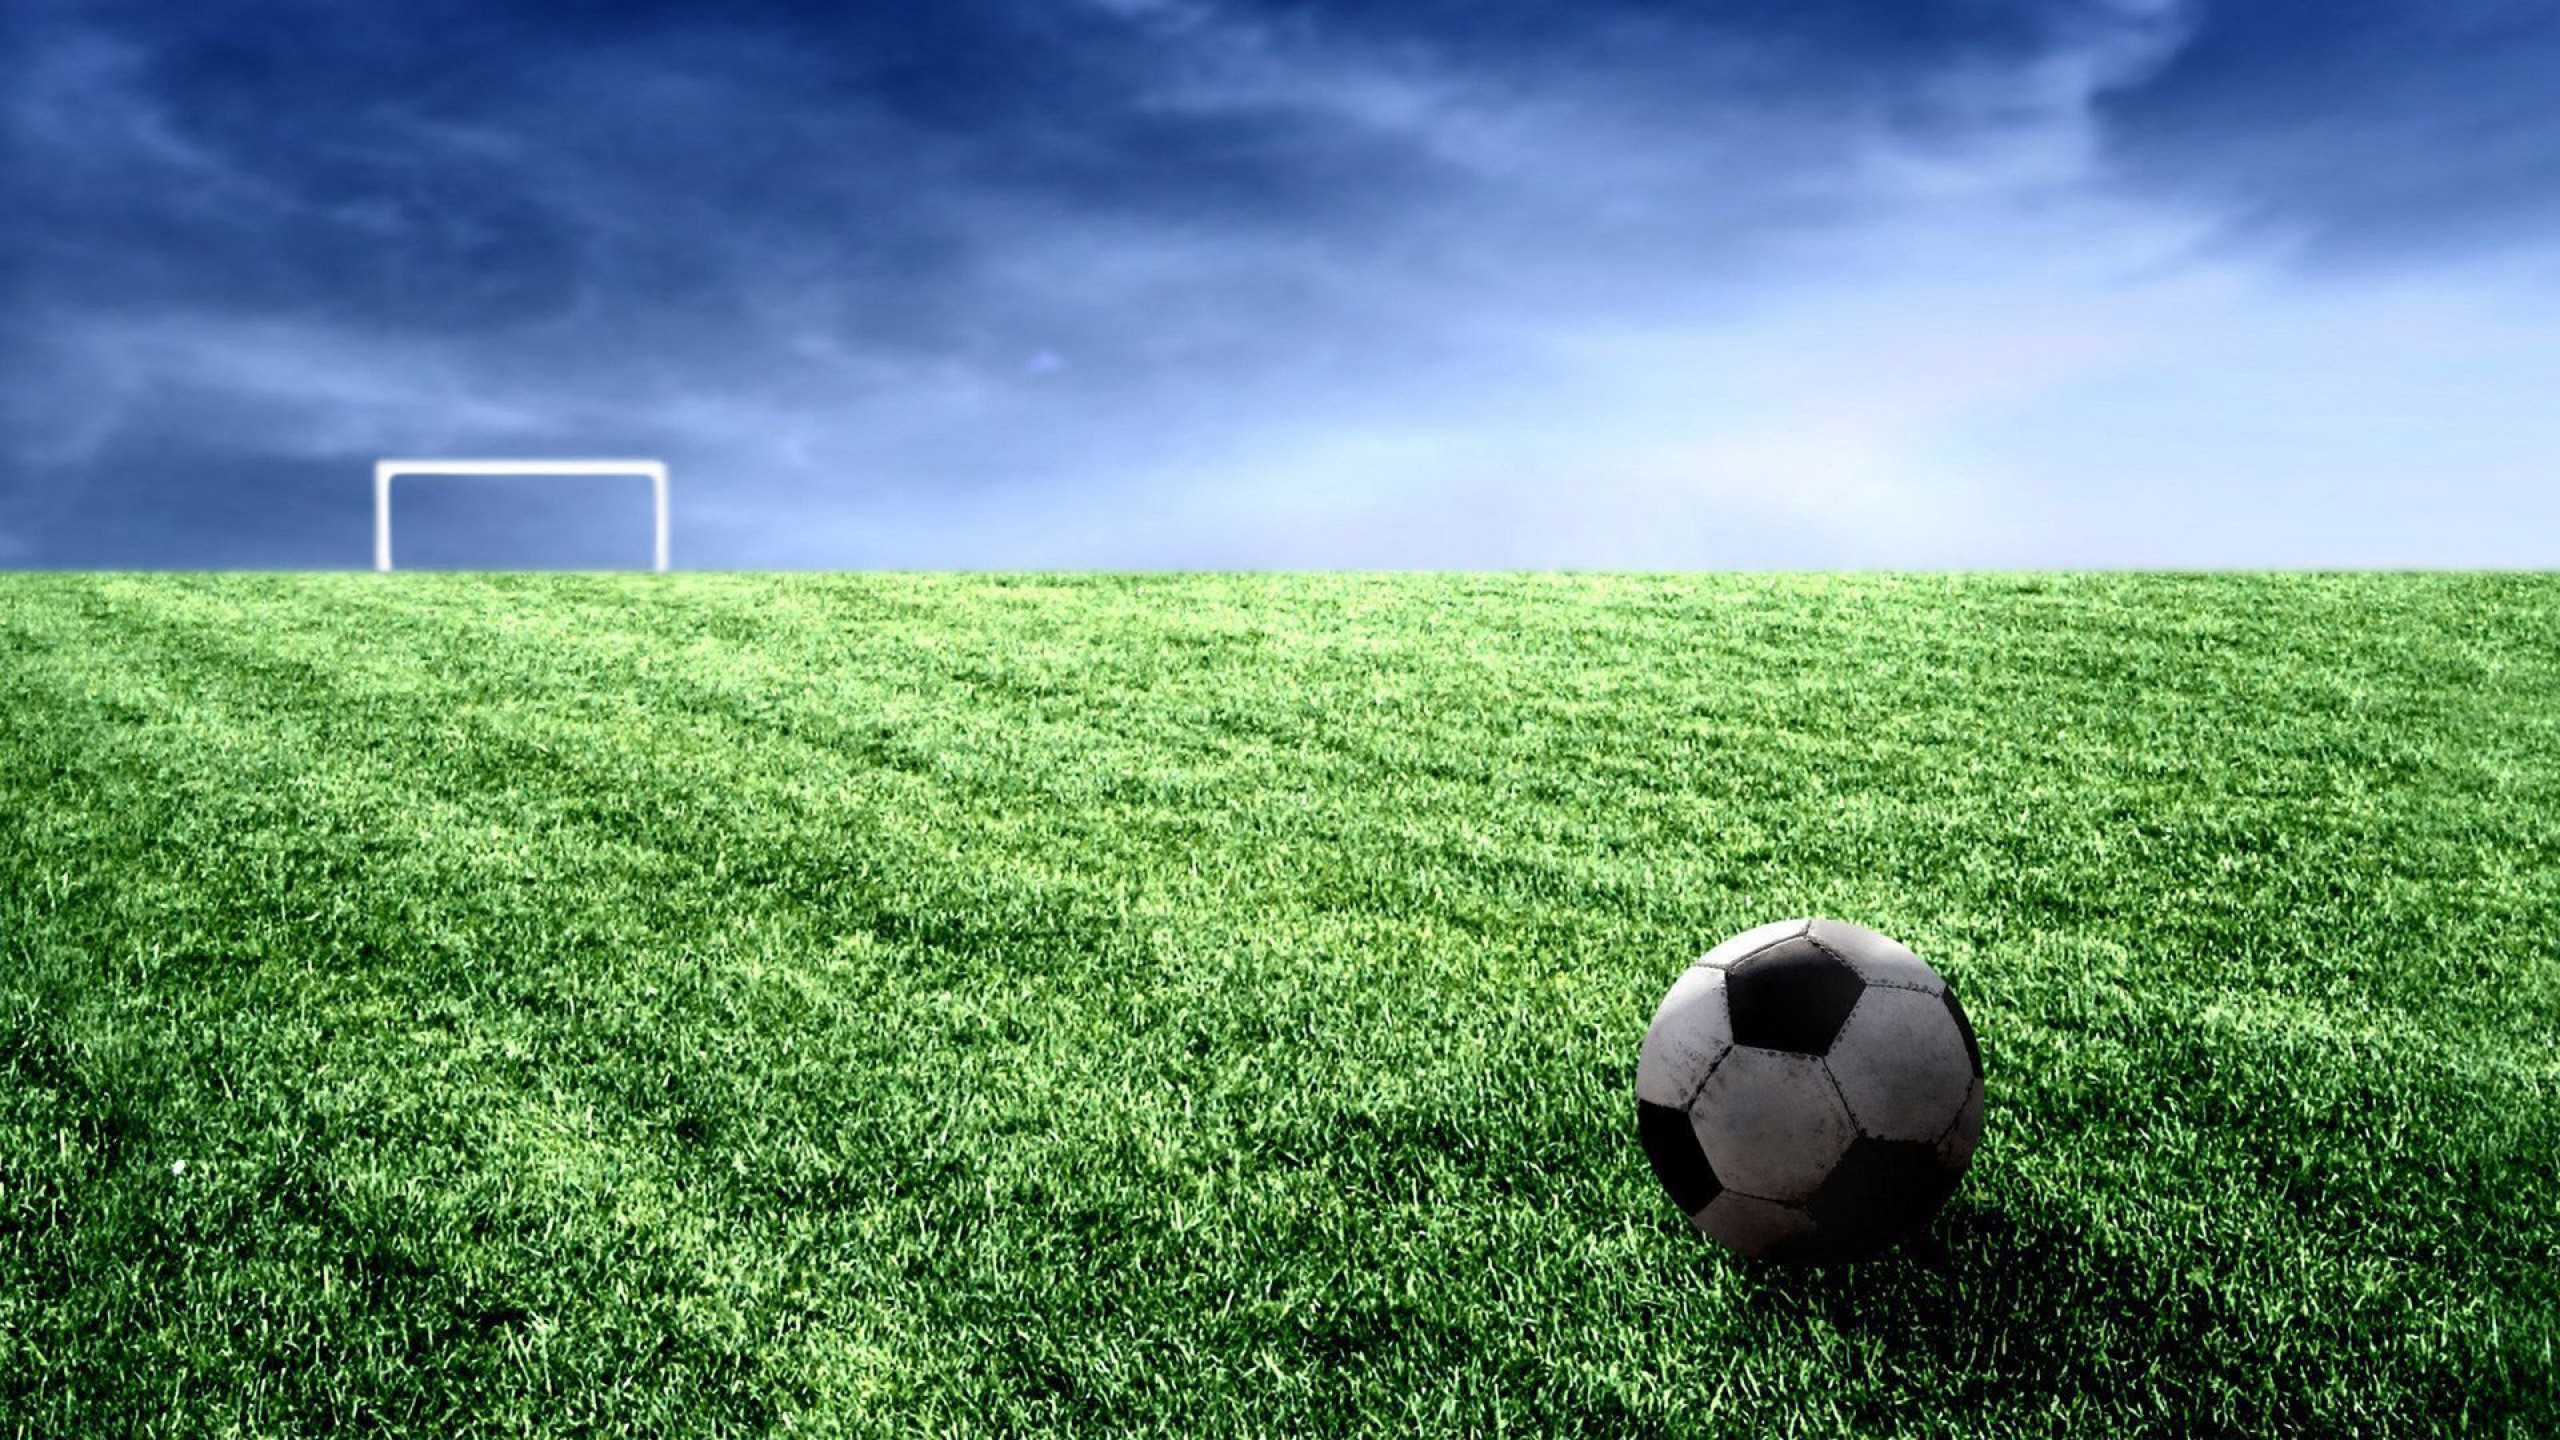 Hd Desktop Wallpaper For Football Lovers: Awesome Football HD Wallpapers